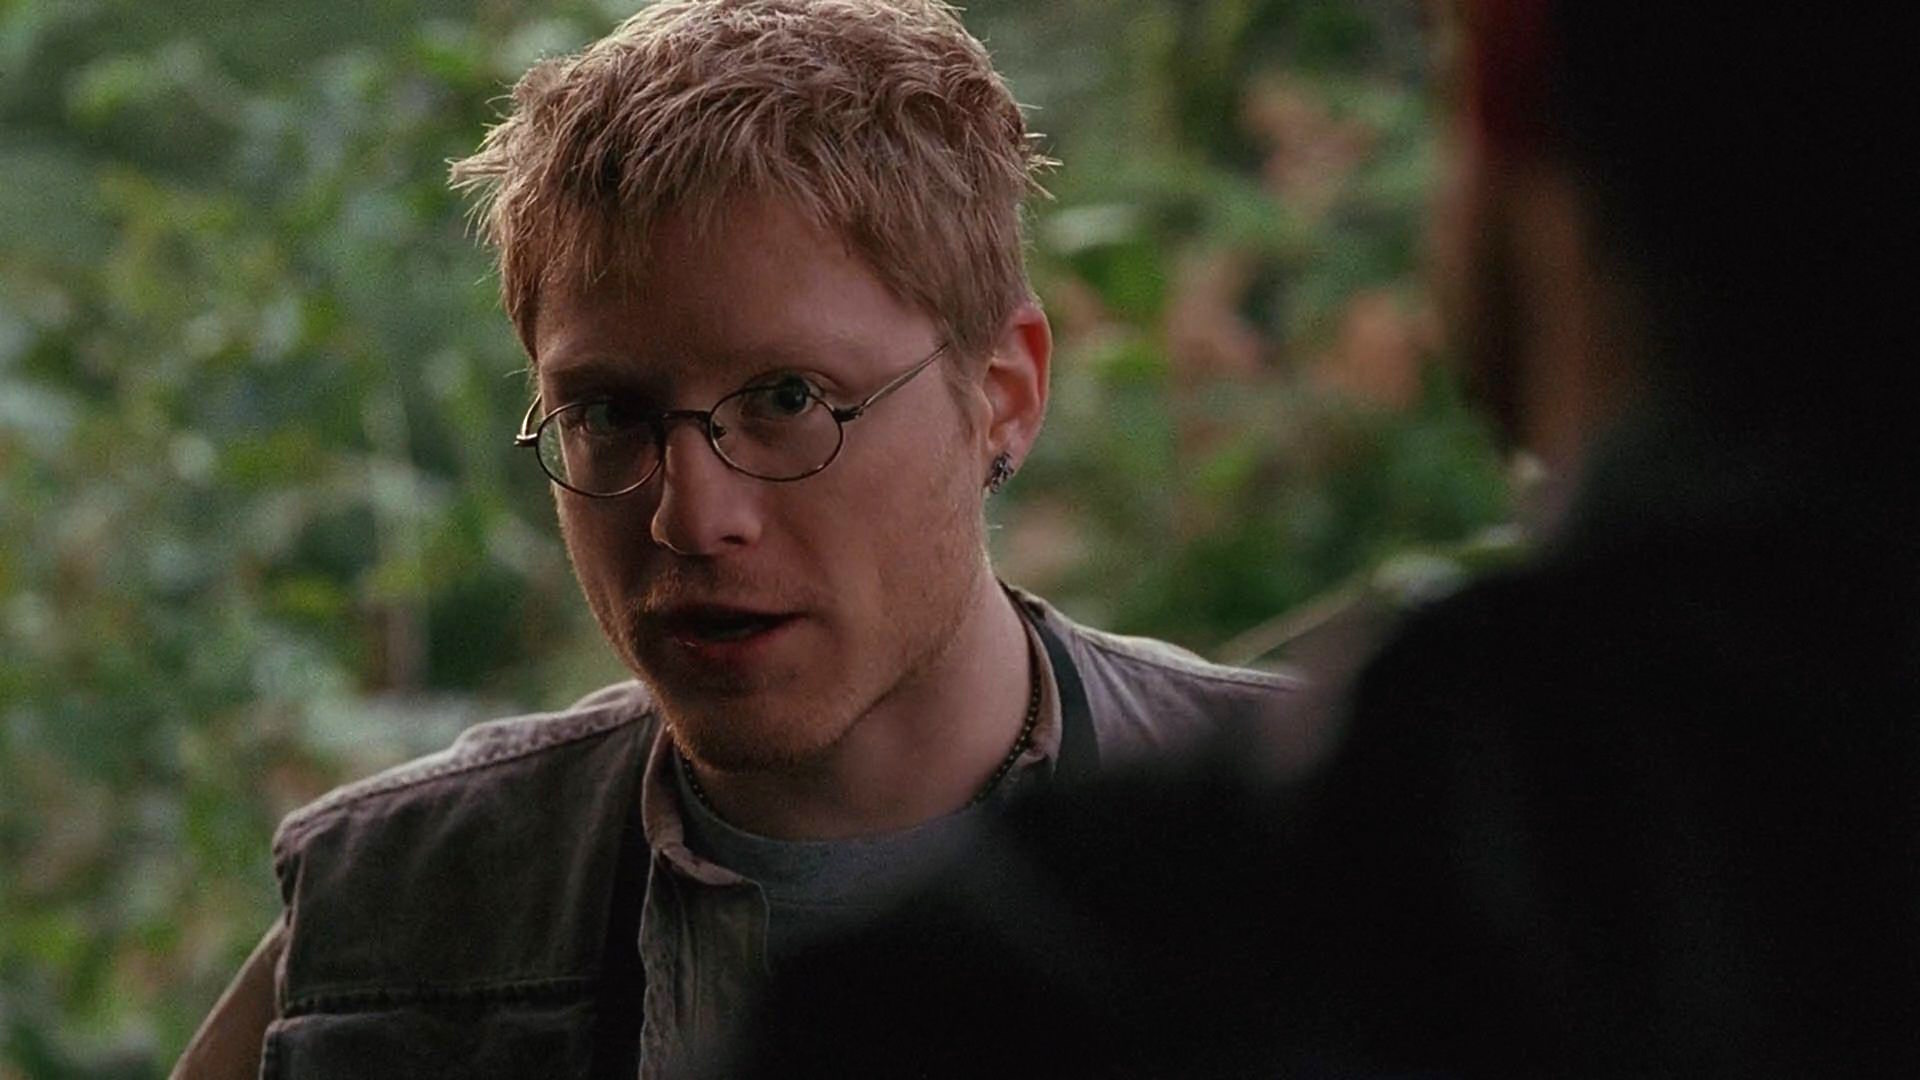 Anthony Rapp in The X Files (1993)